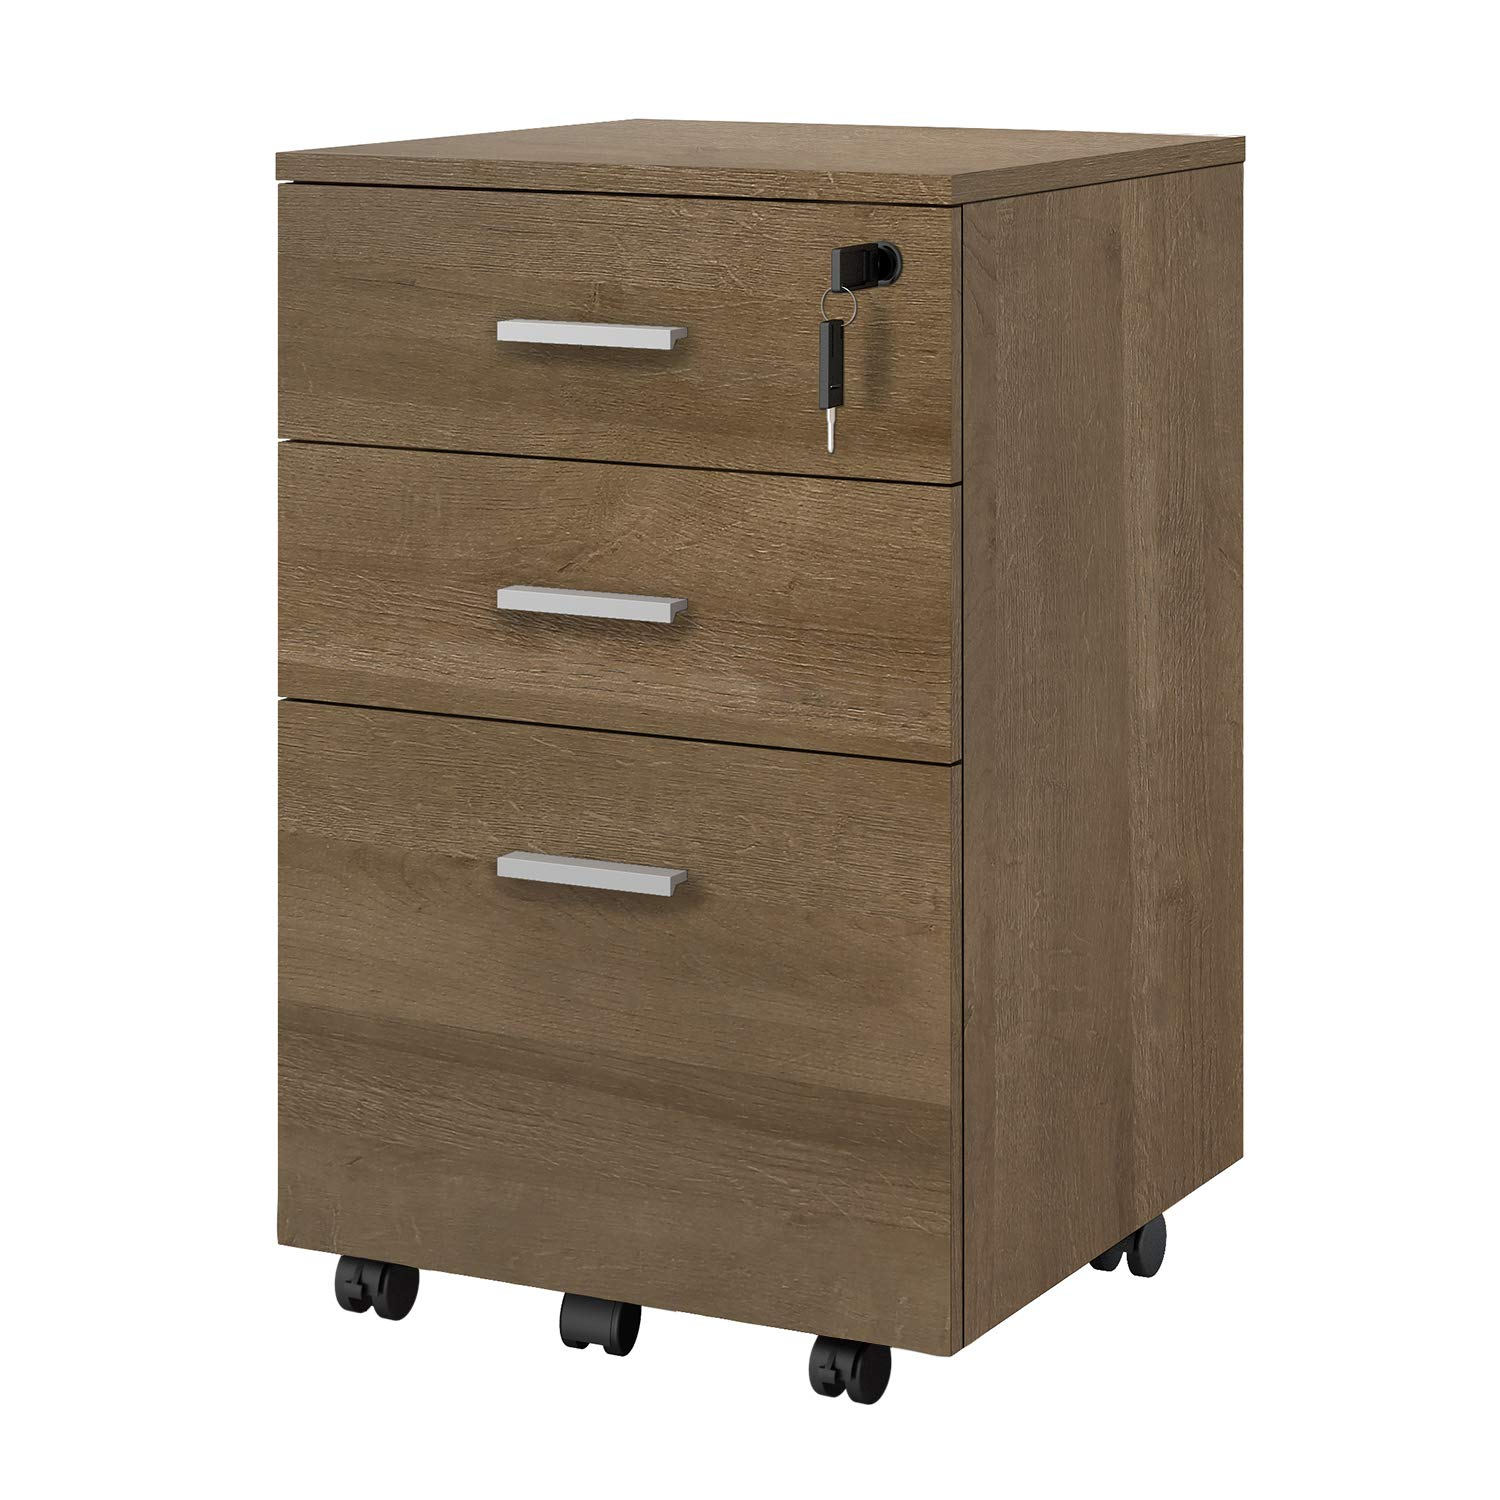 DEVAISE 3 Drawer Mobile File Cabinet with Lock, Wood Filing Cabinet, Fully Assembled Except Casters and Handles, Gray Oak by DEVAISE